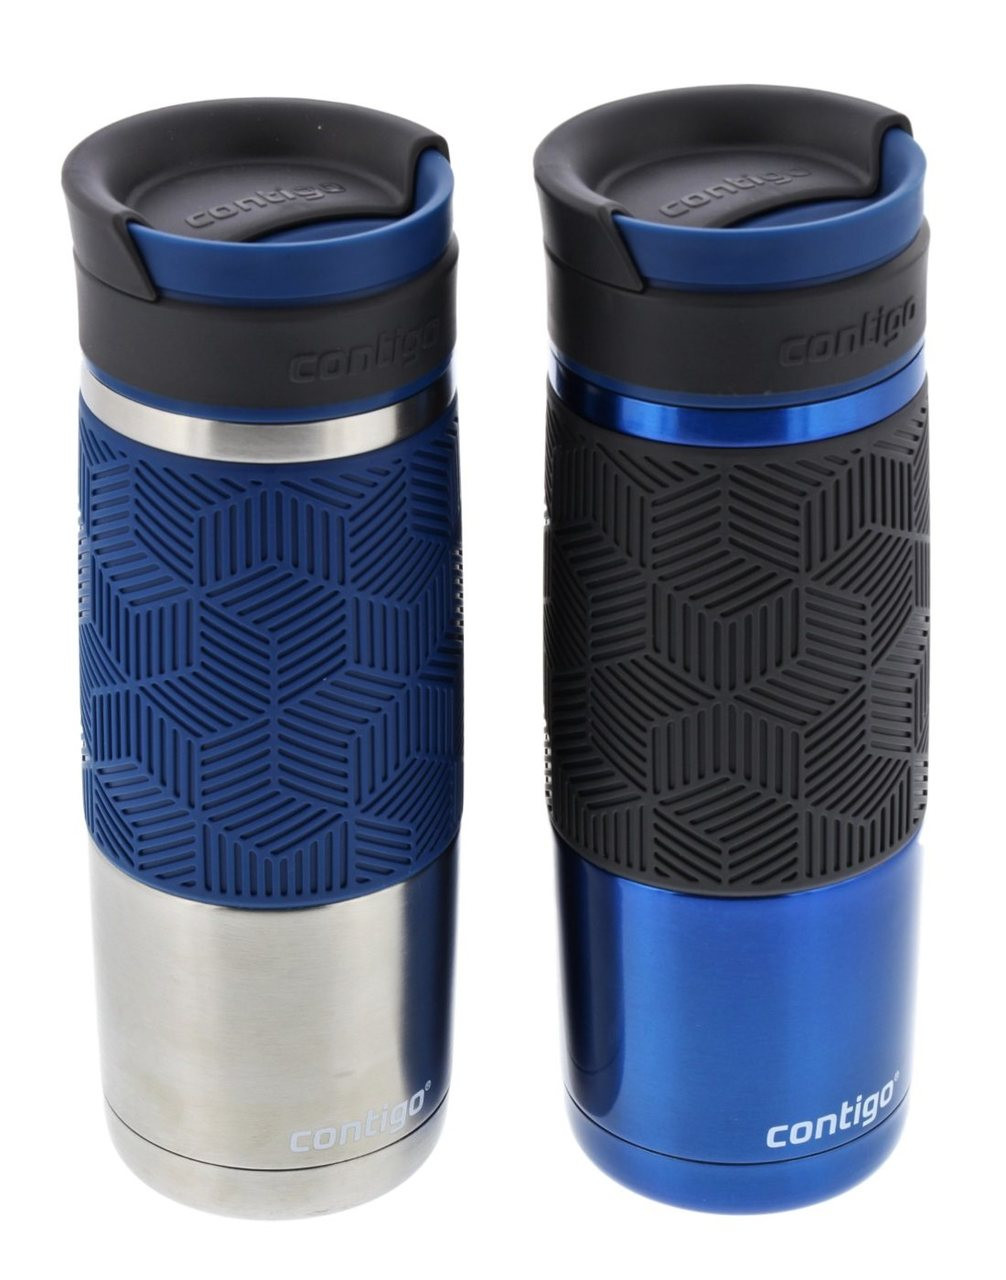 https://d3d71ba2asa5oz.cloudfront.net/23000296/images/contigo-autoseal-transit-travel-mug-stainless-and-monaco-blue-2pk-c.jpg